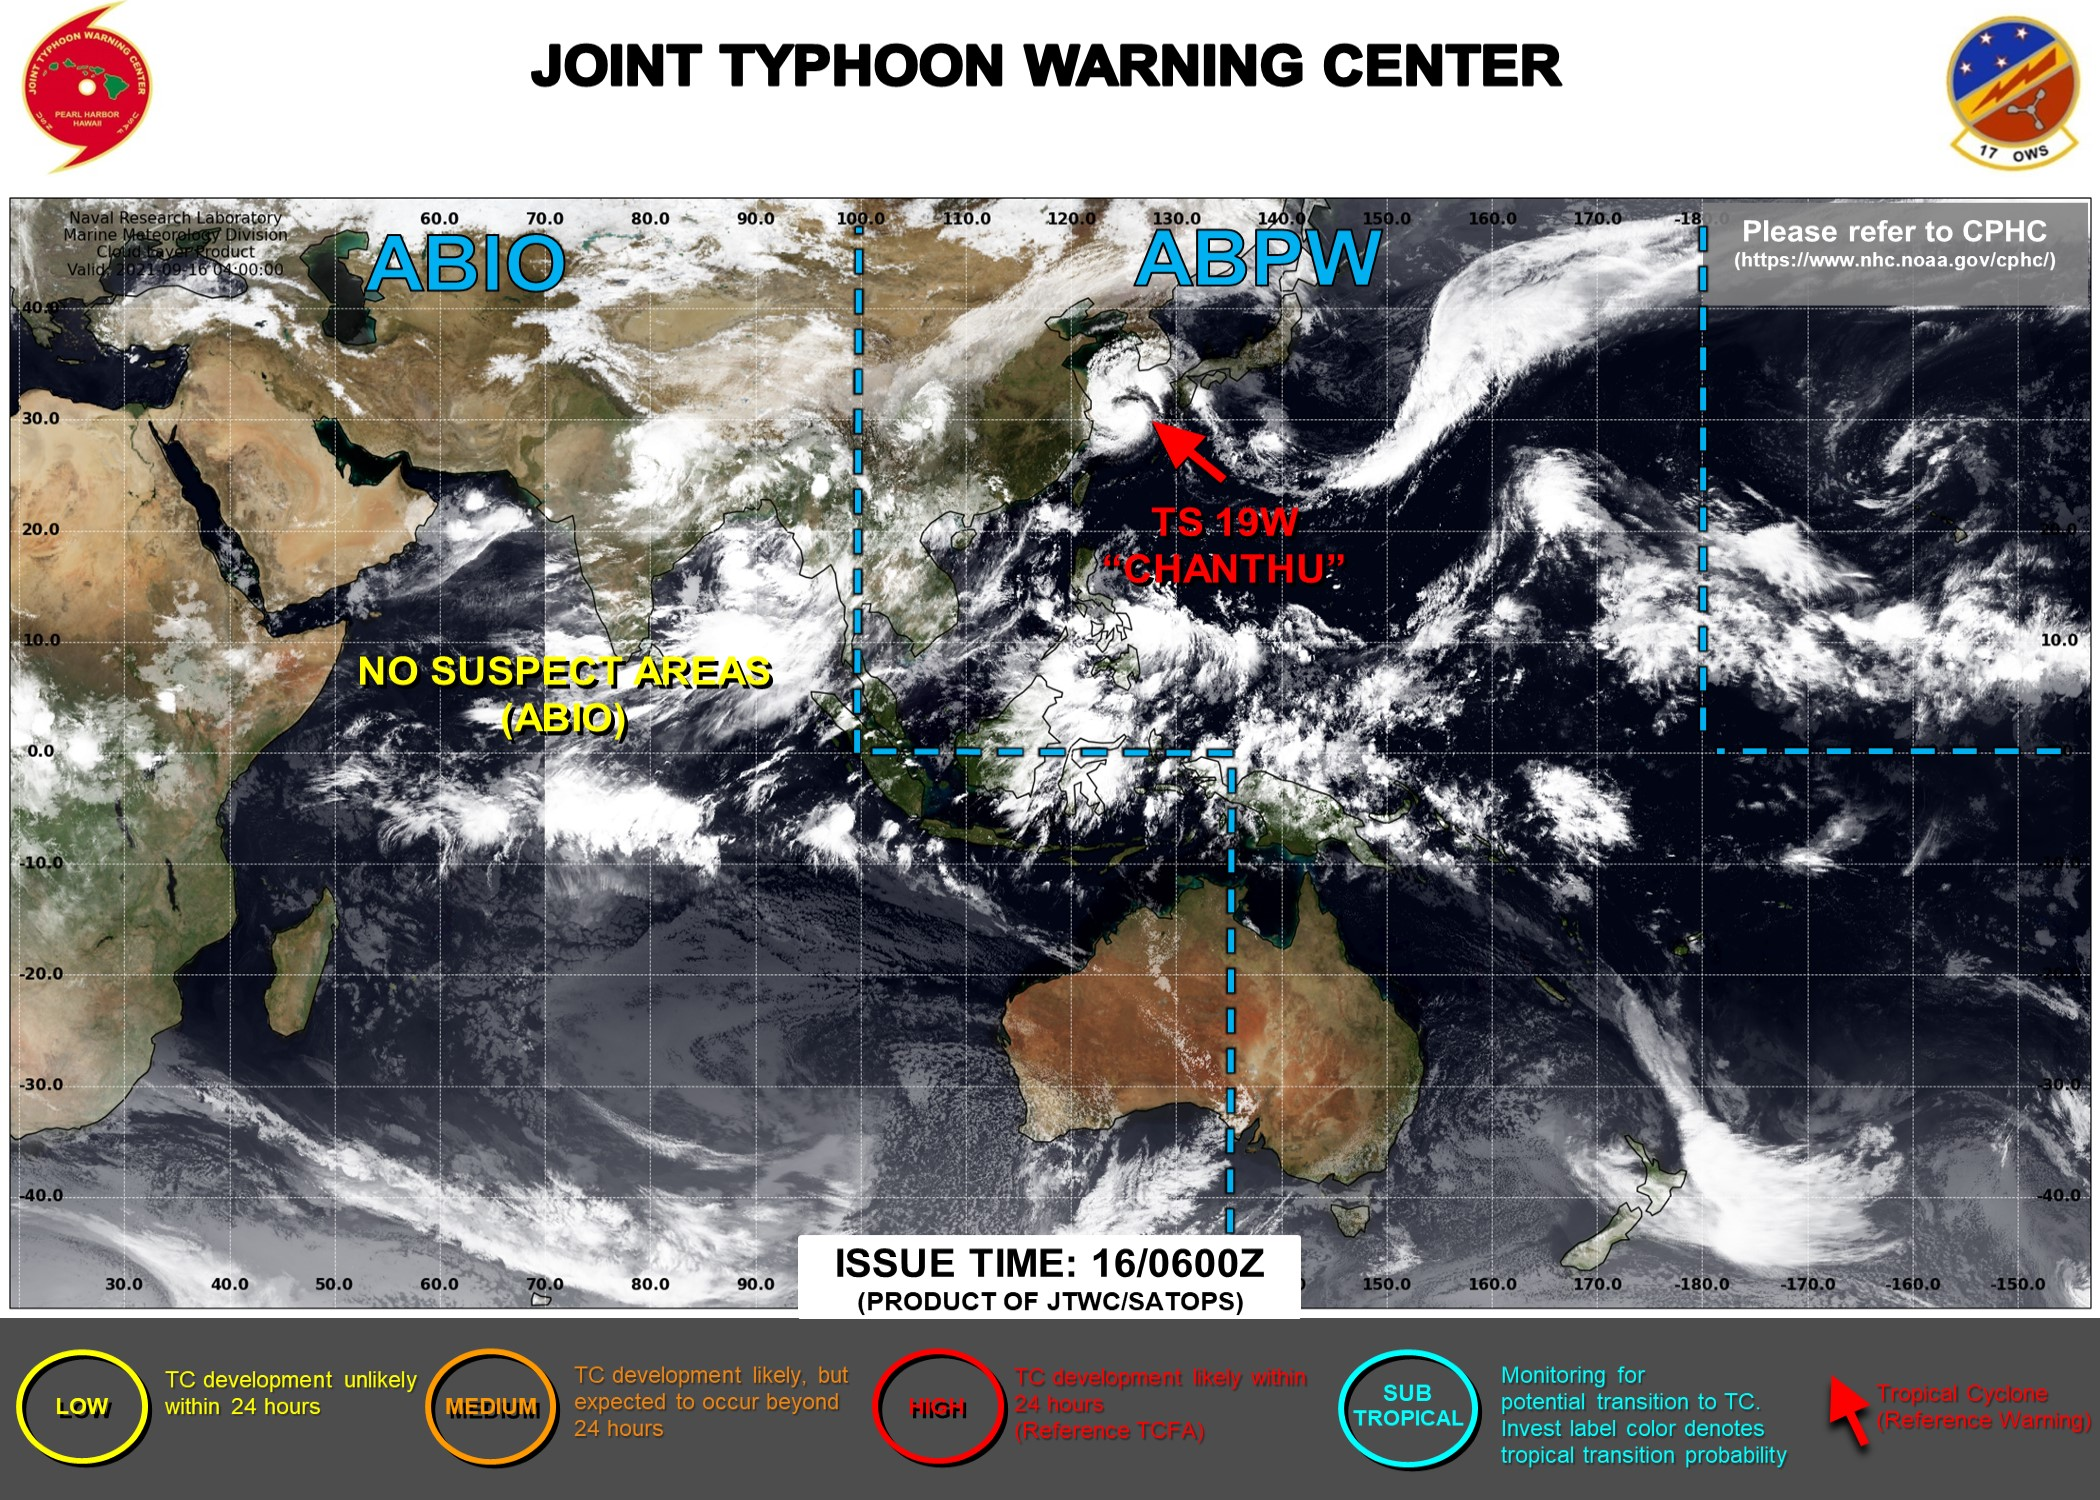 Western Pacific: 19W(CHANTHU) intensity is forecast to peak near Typhoon level//Atlantic: 2 Tropical Cyclone Formation Alerts,16/09utc